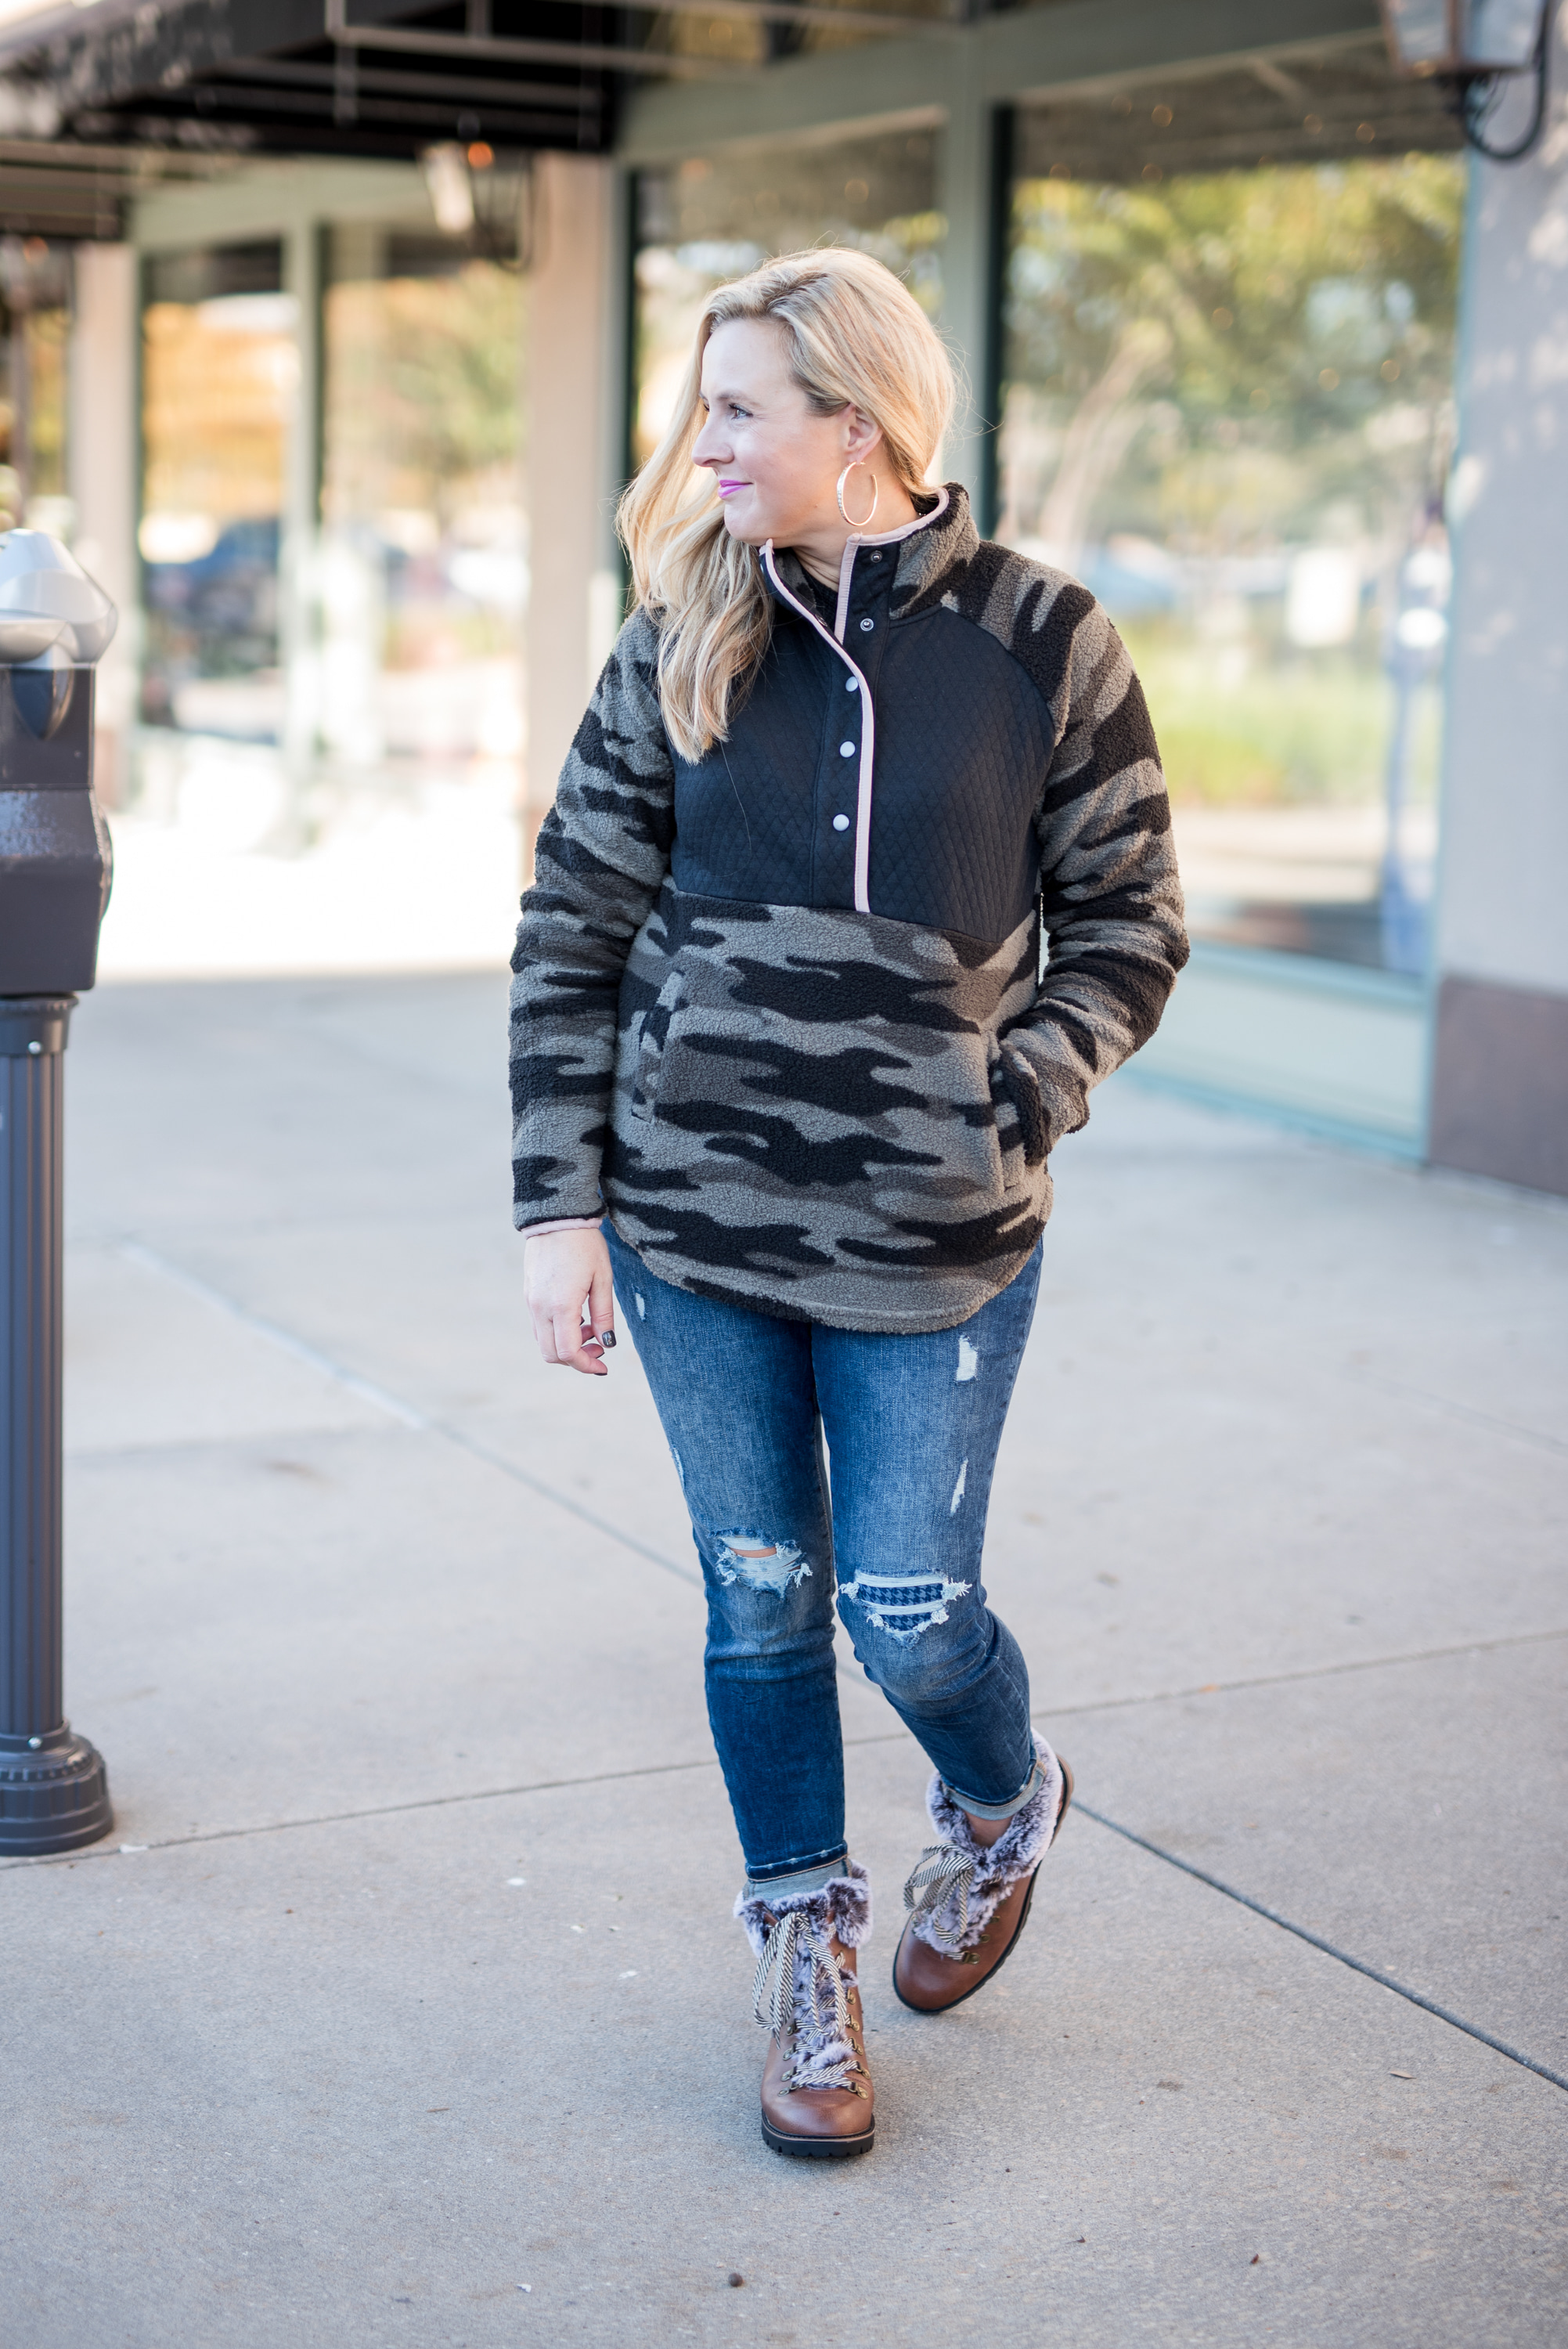 Maurice's Clothing by popular Houston fashion blog, Fancy Ashley: image of a woman wearing a Maurice's camo fleece pullover, distressed denim, and brown fur trimmed combat boots.